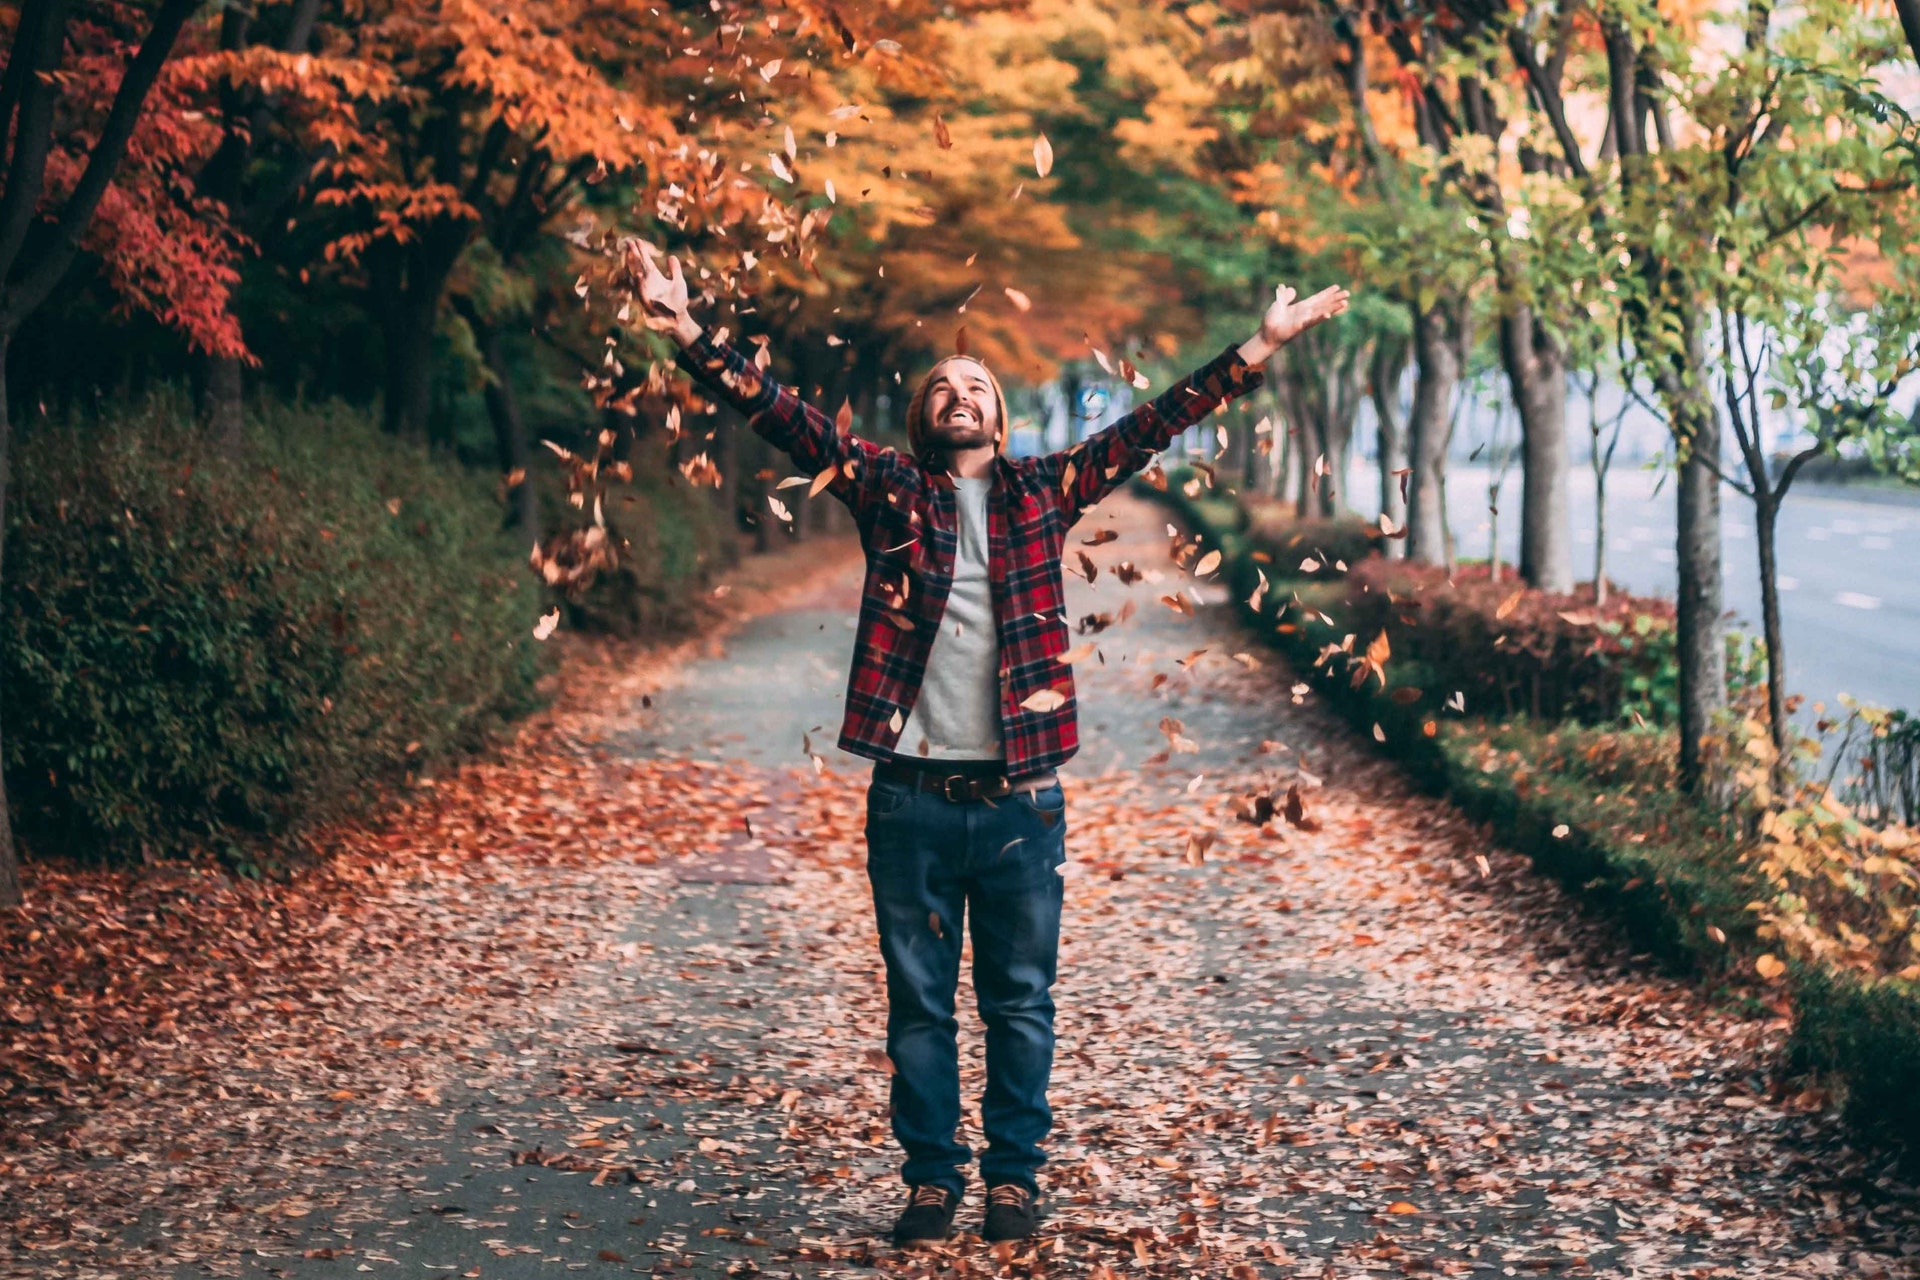 Autumn scene with man on paved trail covered in leaves throwing leaves into the air